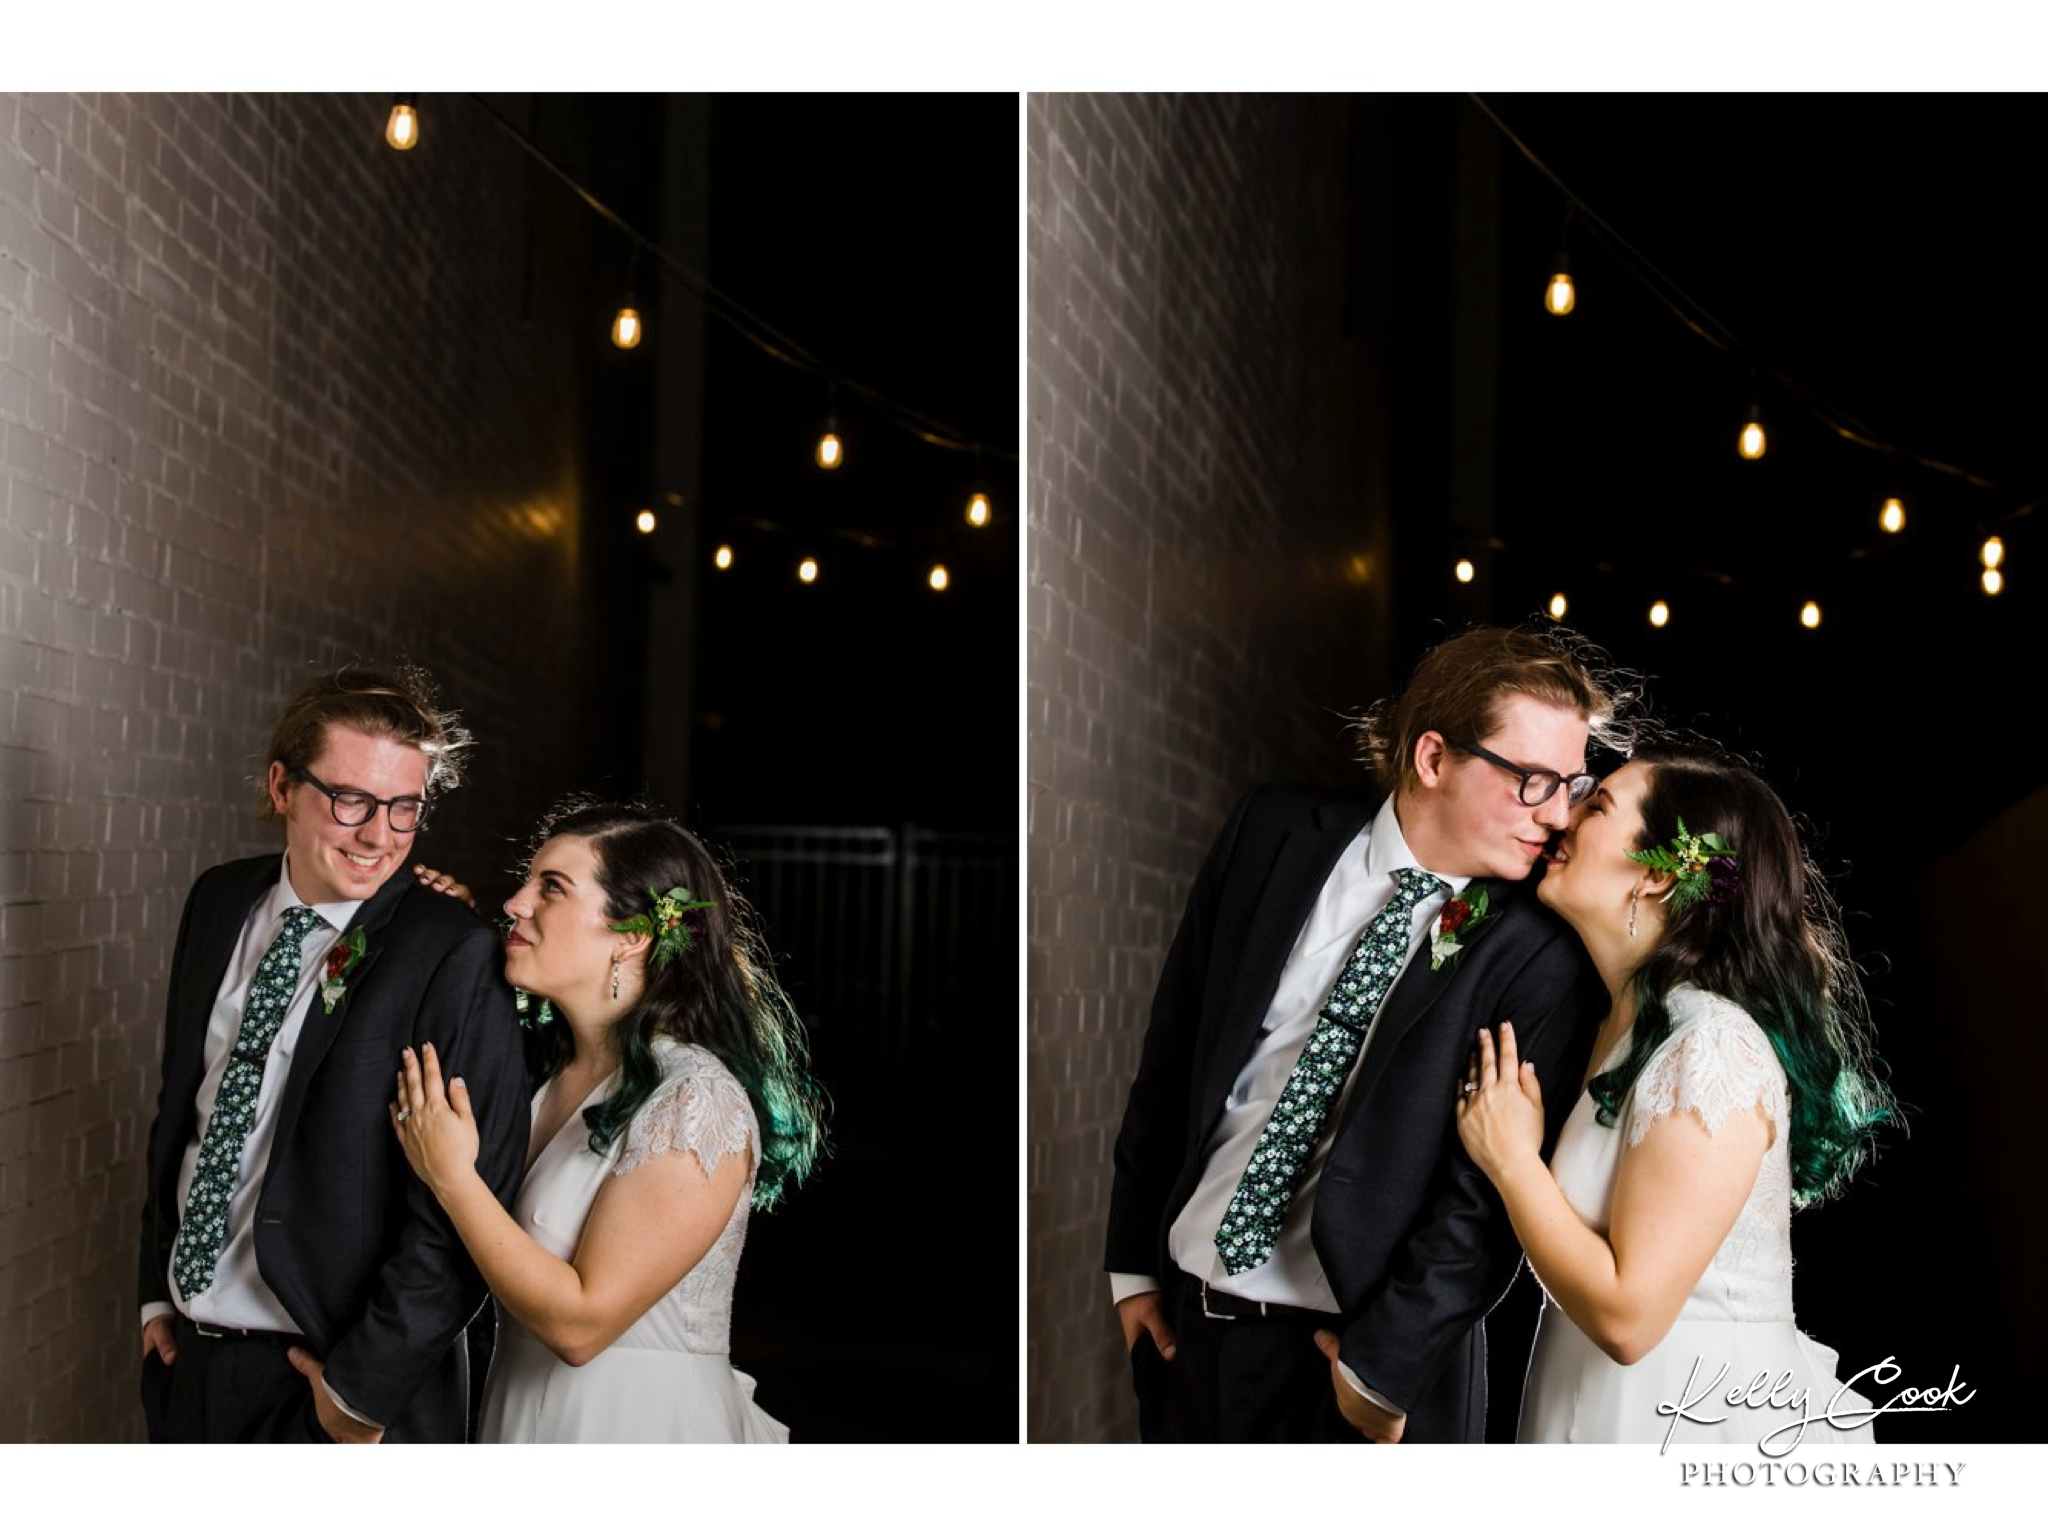 Romantic wedding photos of a bride and groom at their Wild Carrot wedding in St. Louis